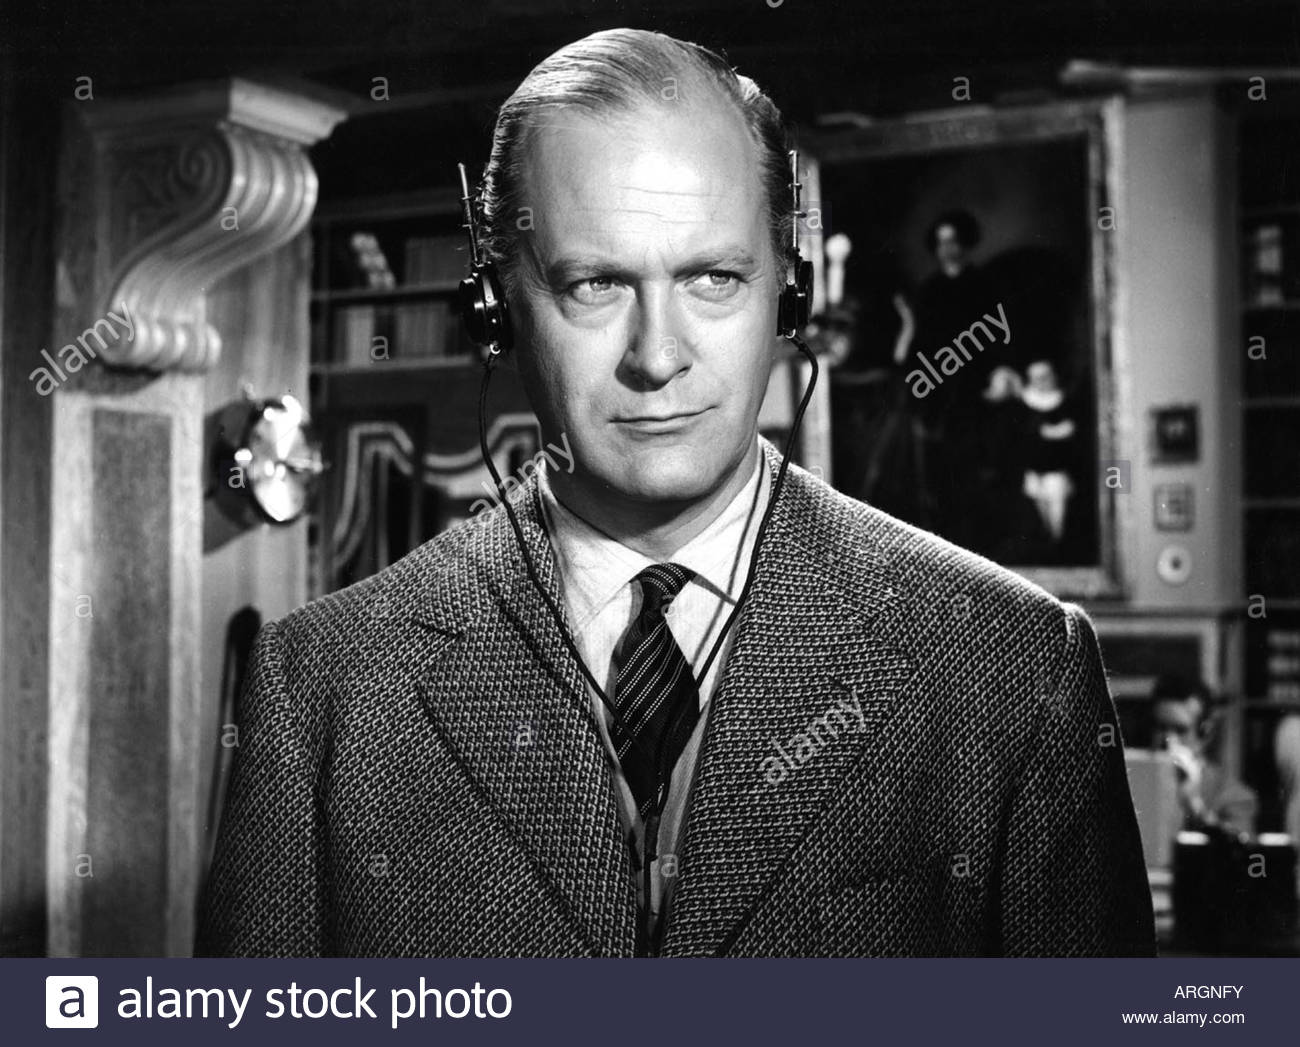 Juergens, Curd, 13.12.1915 - 18.6.1982, German actor, portrait, scene from movie, 'London Calling North Pole' - Stock Image